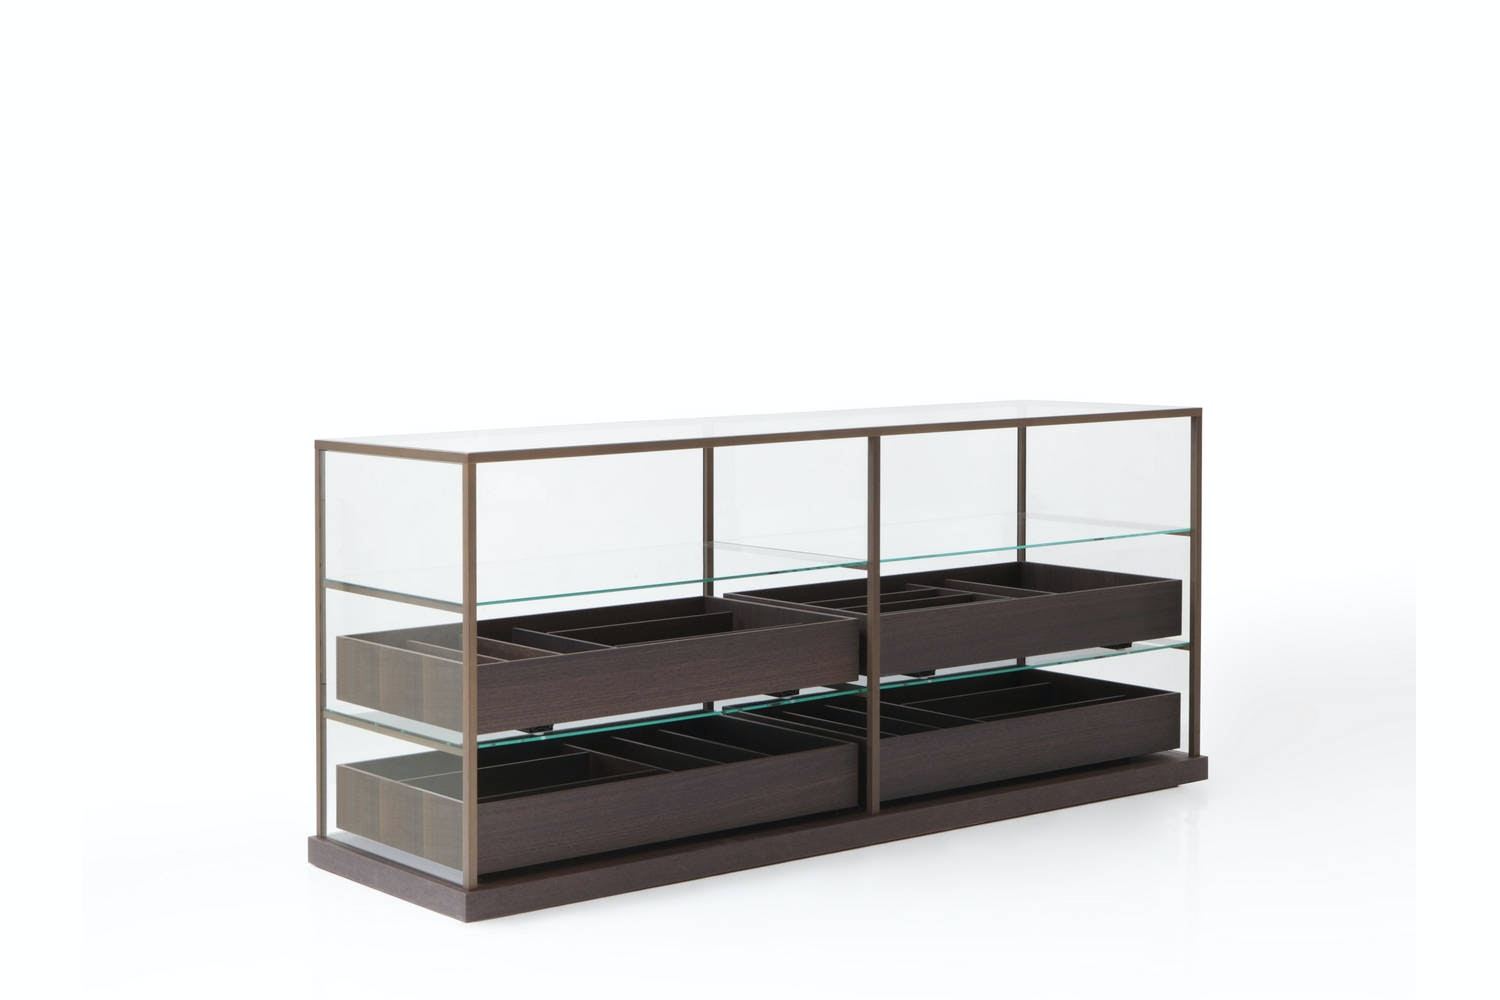 Acquario Storage Unit by Piero Lissoni for Porro